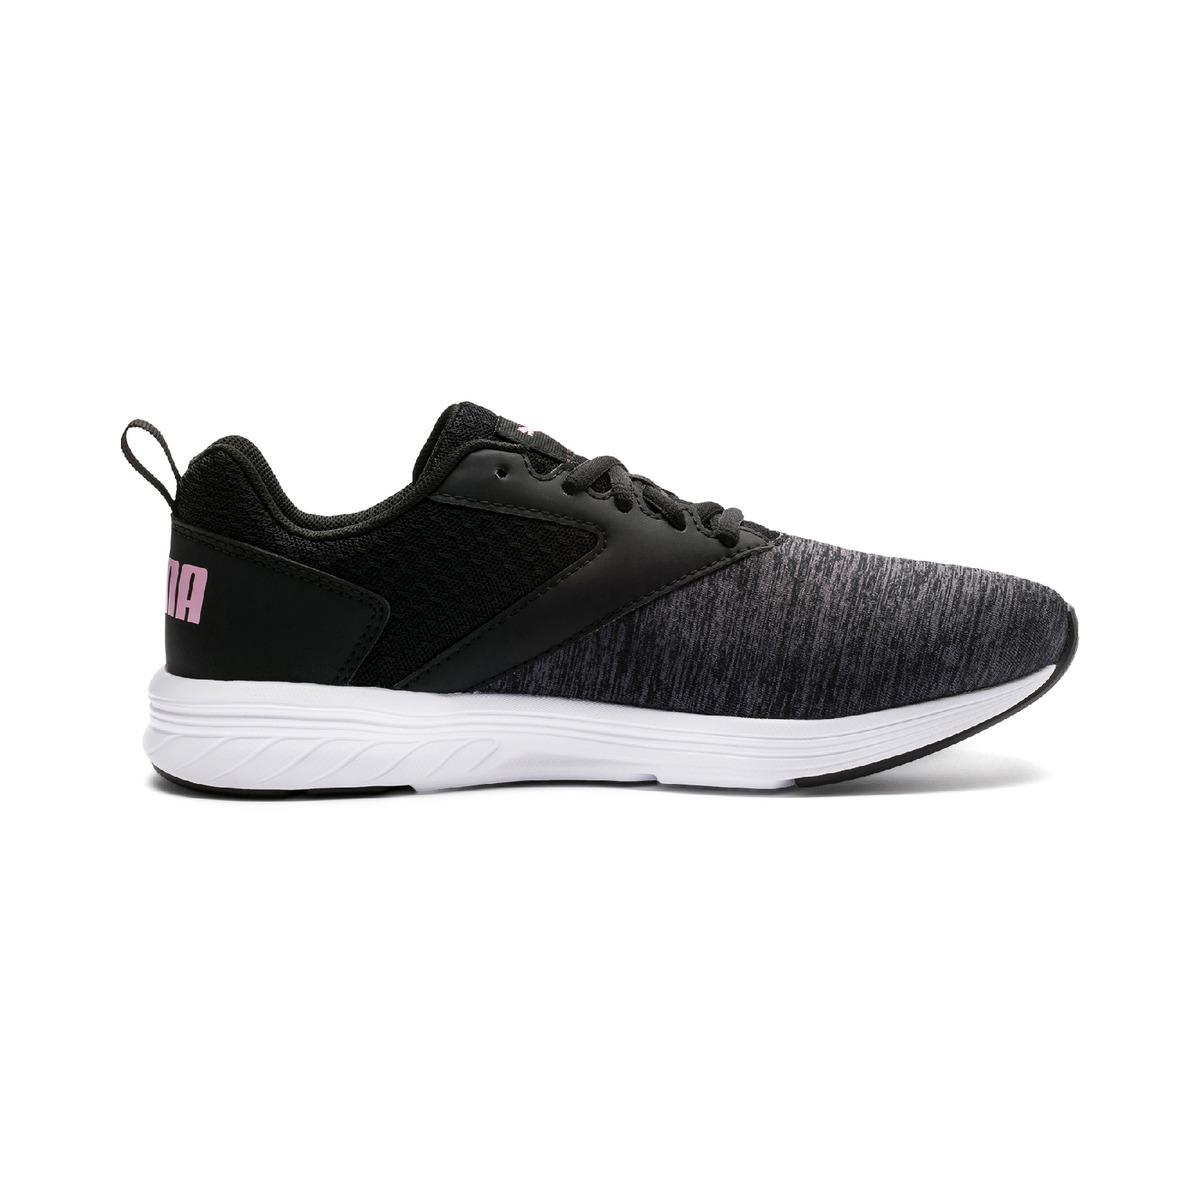 9932682b11d270 Lyst - PUMA Nrgy Comet Running Shoes in Black